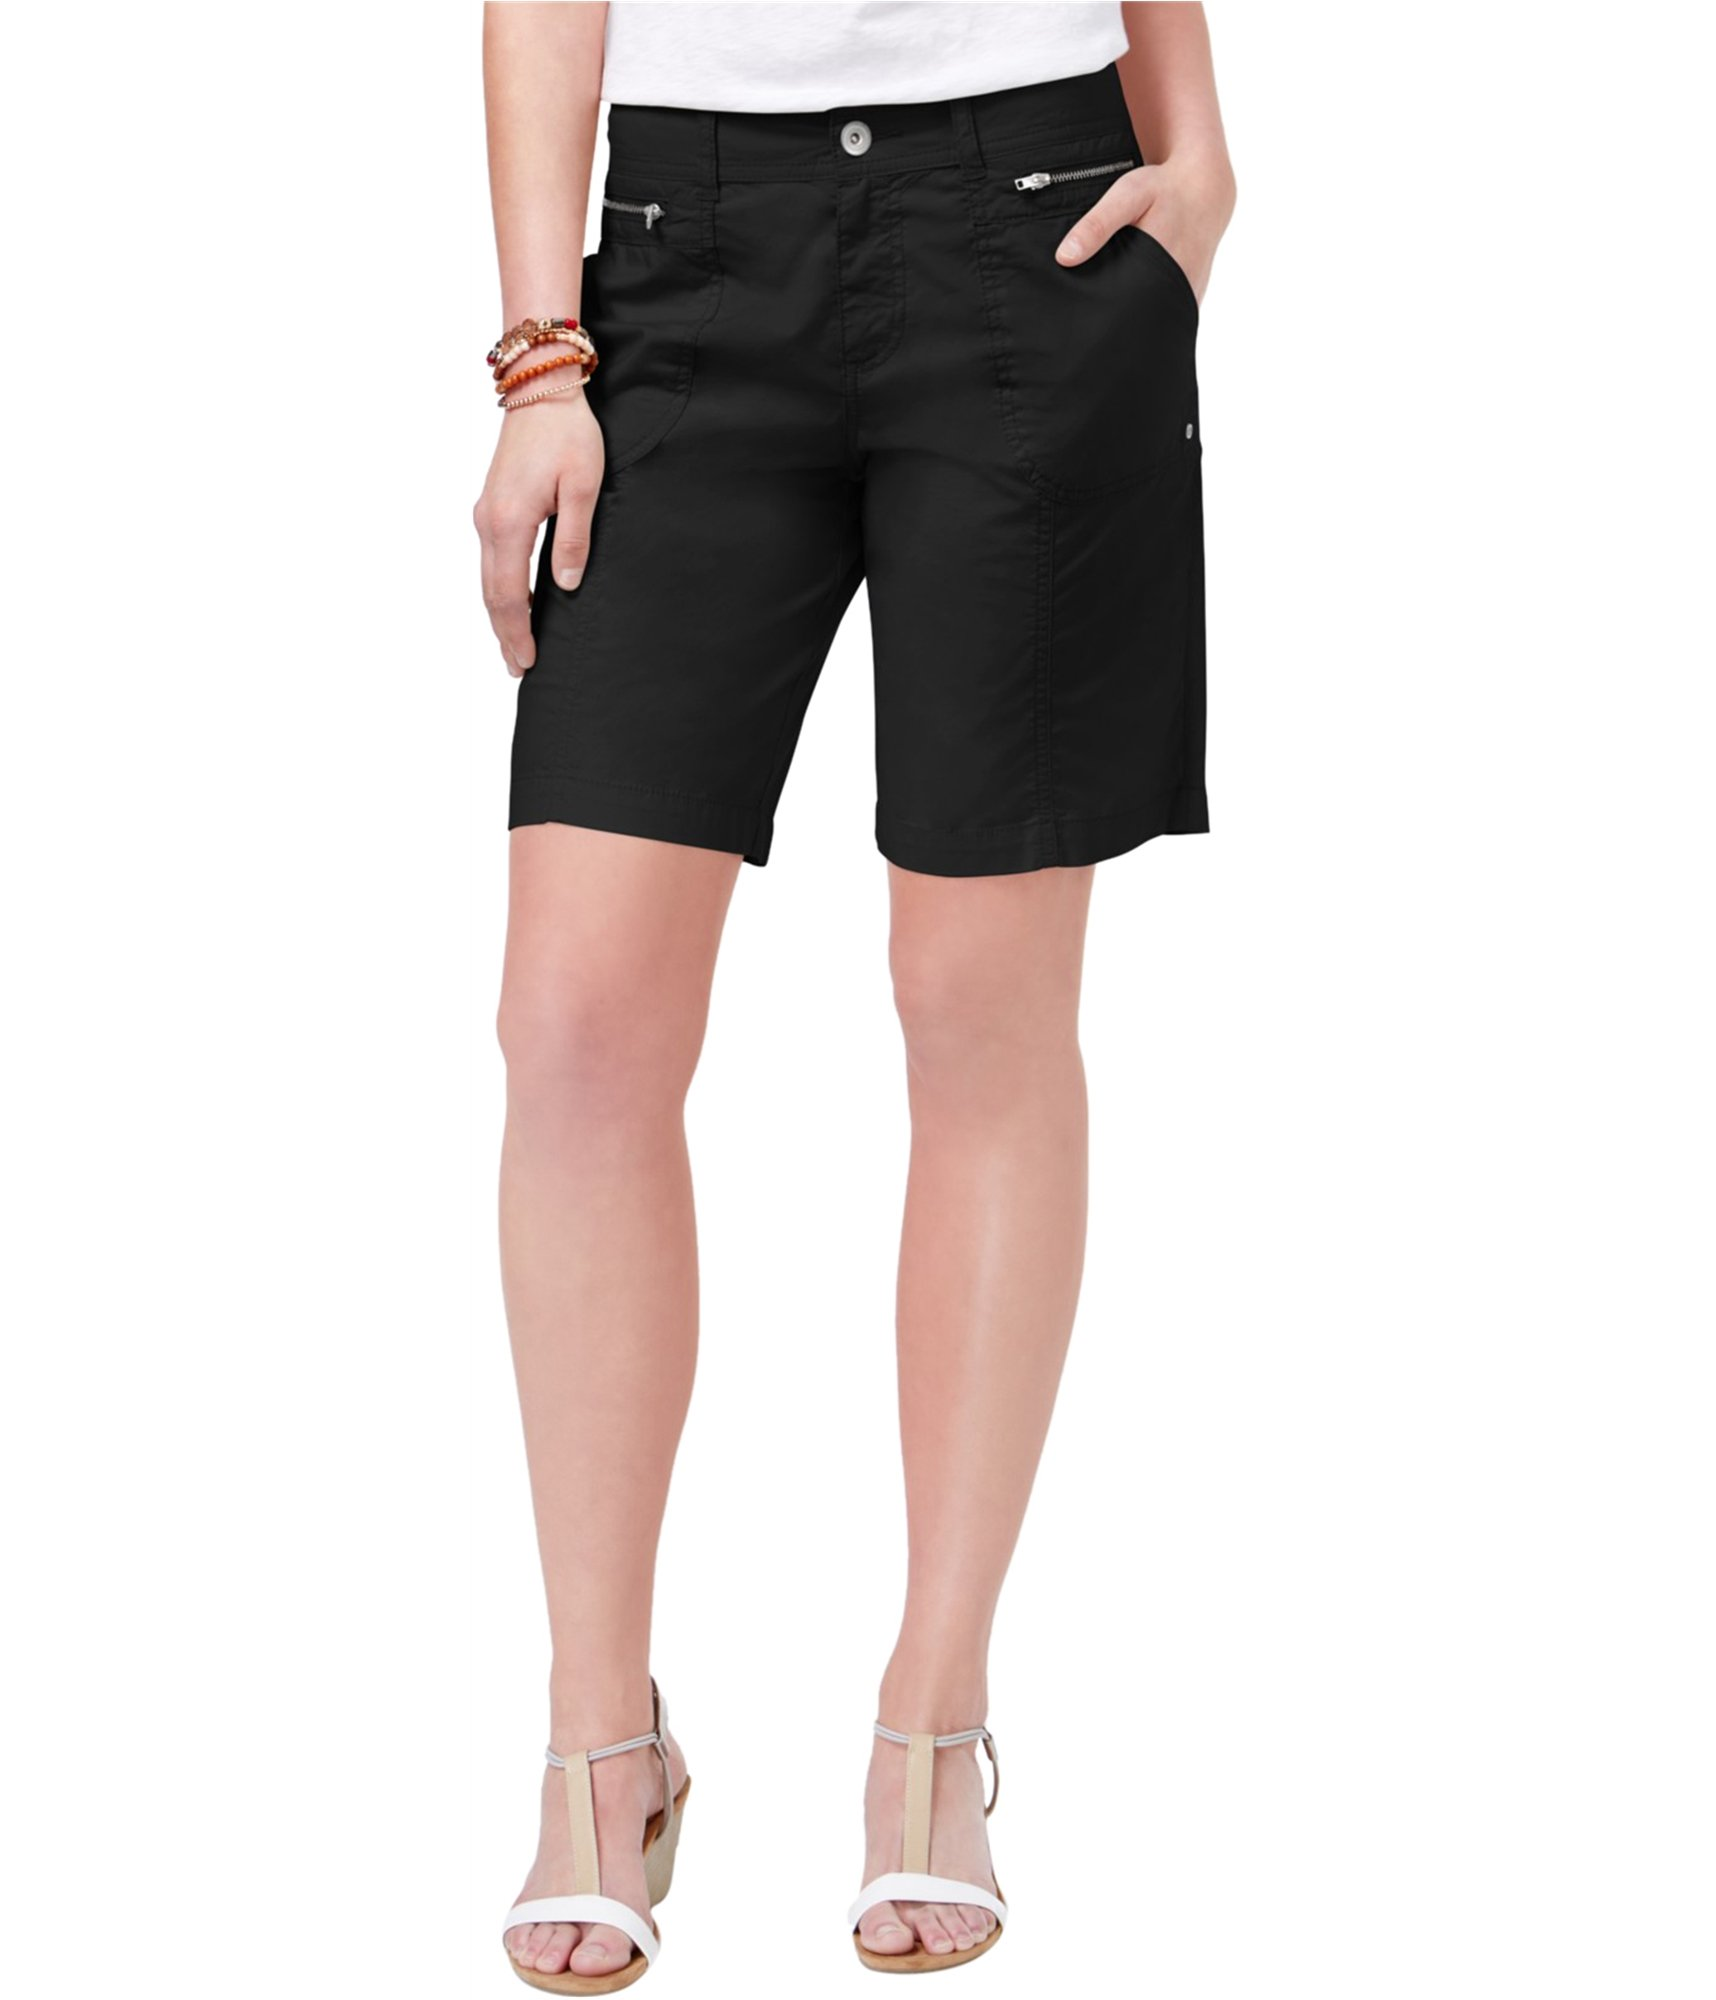 Style & Co. Womens Twill Mid Rise Casual Shorts Black 14